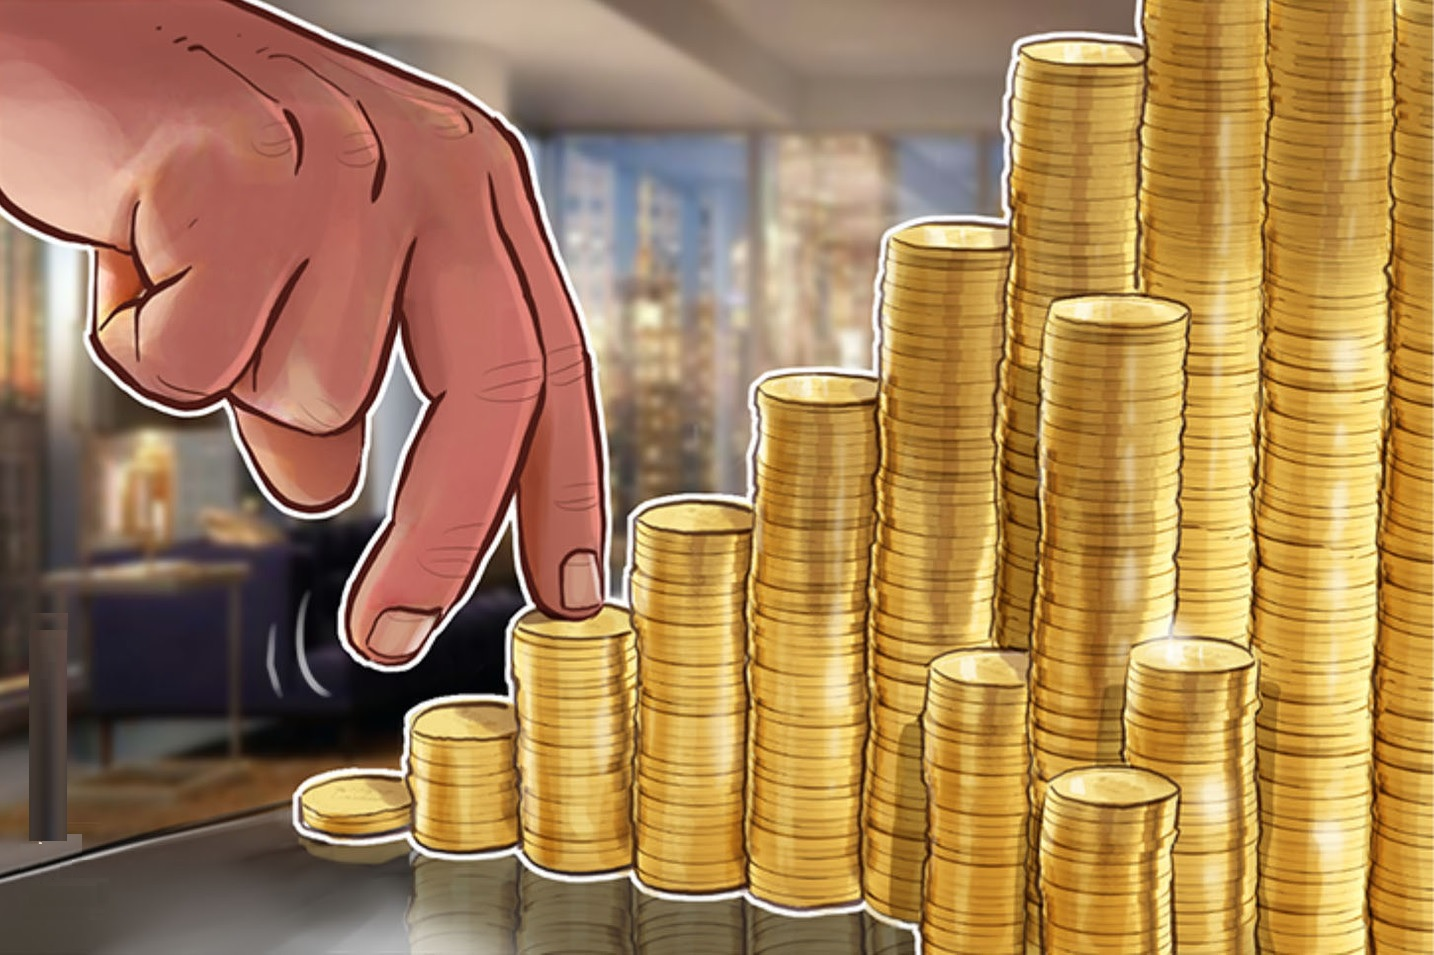 MicroStrategy just bought nearly 500 million USD in Bitcoin